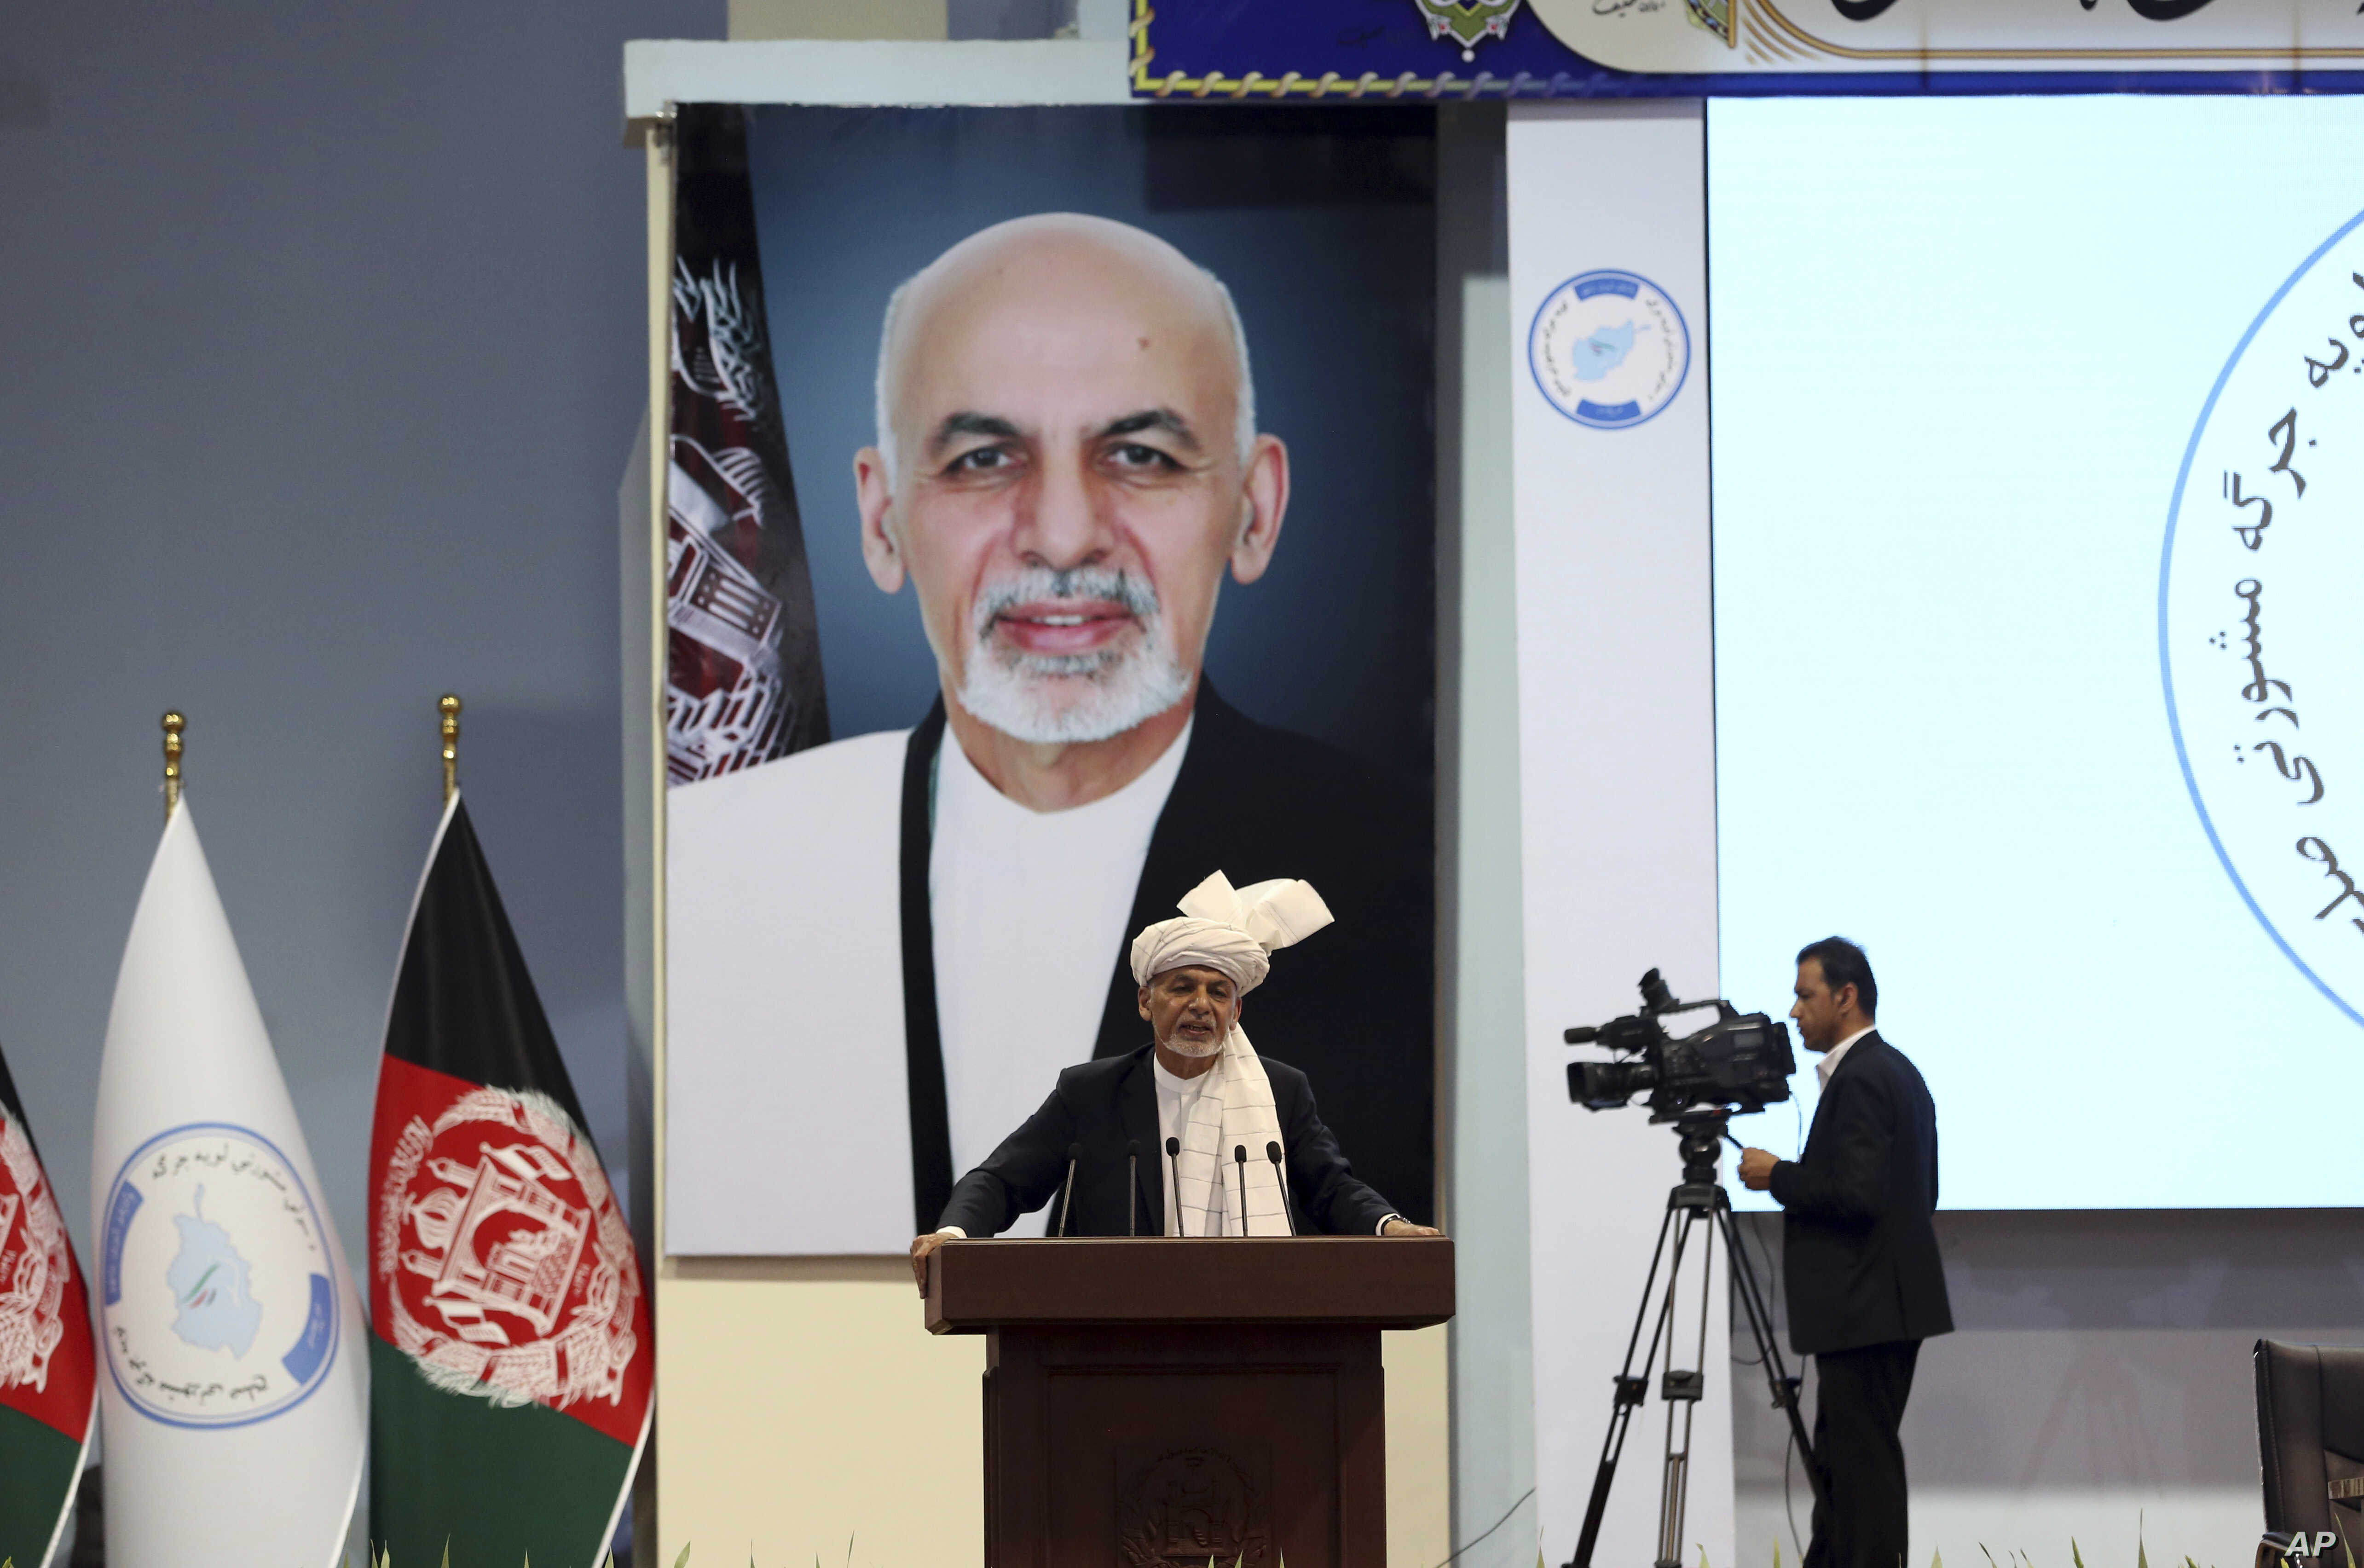 Backdropped by his own image, Afghan President Ashraf Ghani speaks to delegates during the first day of the Afghan Loya Jirga meeting in Kabul, Afghanistan, April 29, 2019.